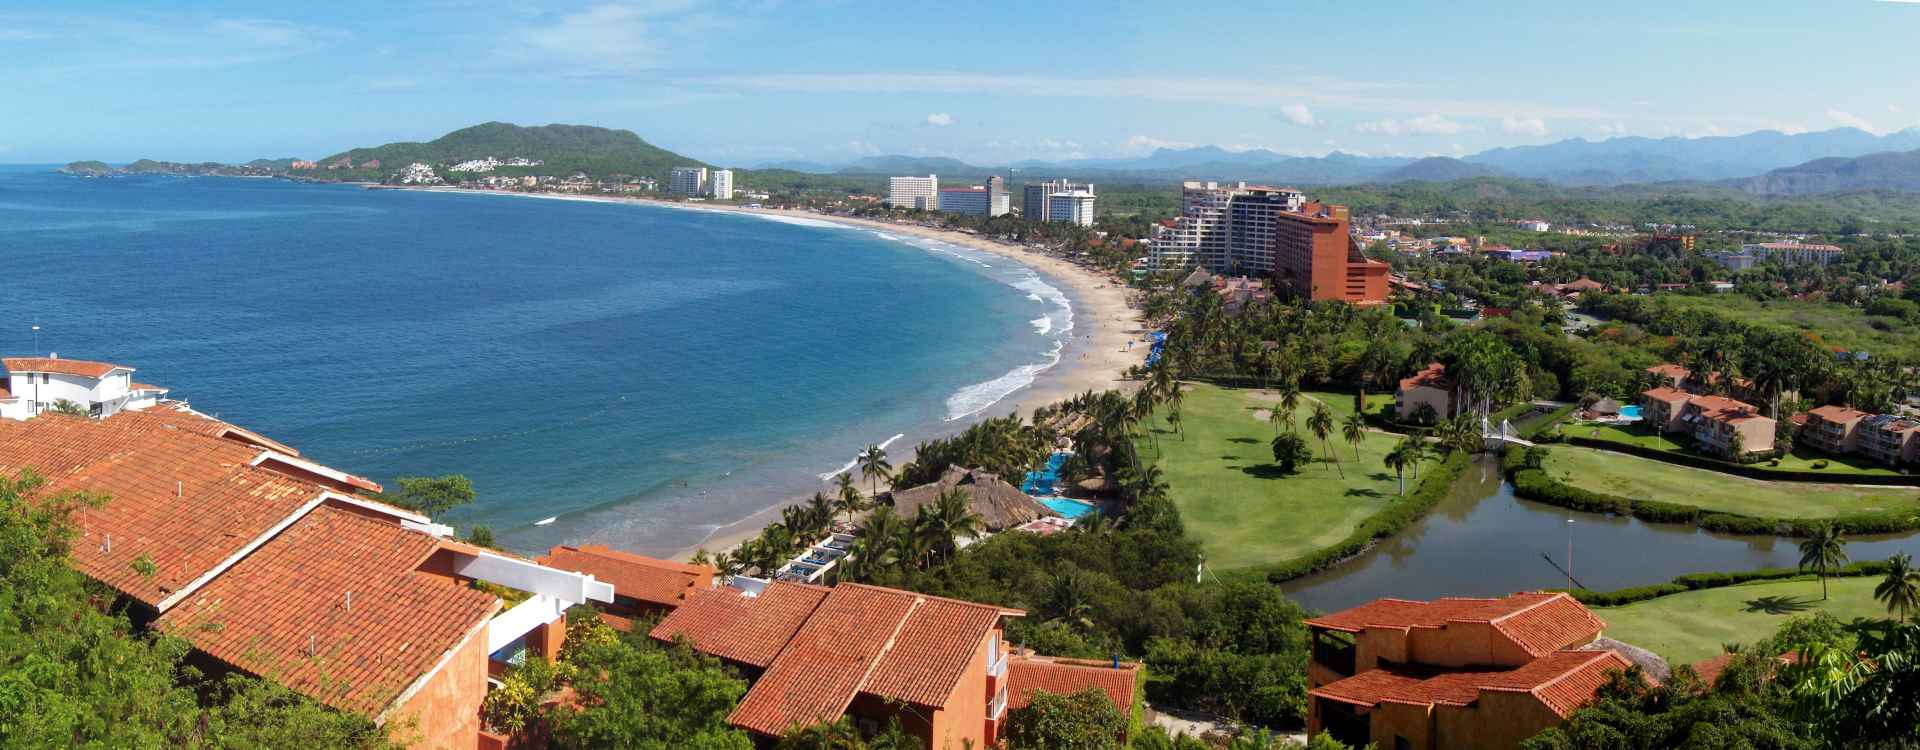 City Tour in Ixtapa Zihuatanejo Mexico | Pacific Tours Ixtapa. This is a Complete tour of the three cities, Ixtapa Resort Zone, Zihuatanejo Fishing Village and Petatlan Cathedral. Our English speaking guide will make sure you will enjoy, and learn a lot of Ixtapa Zihuatanejo